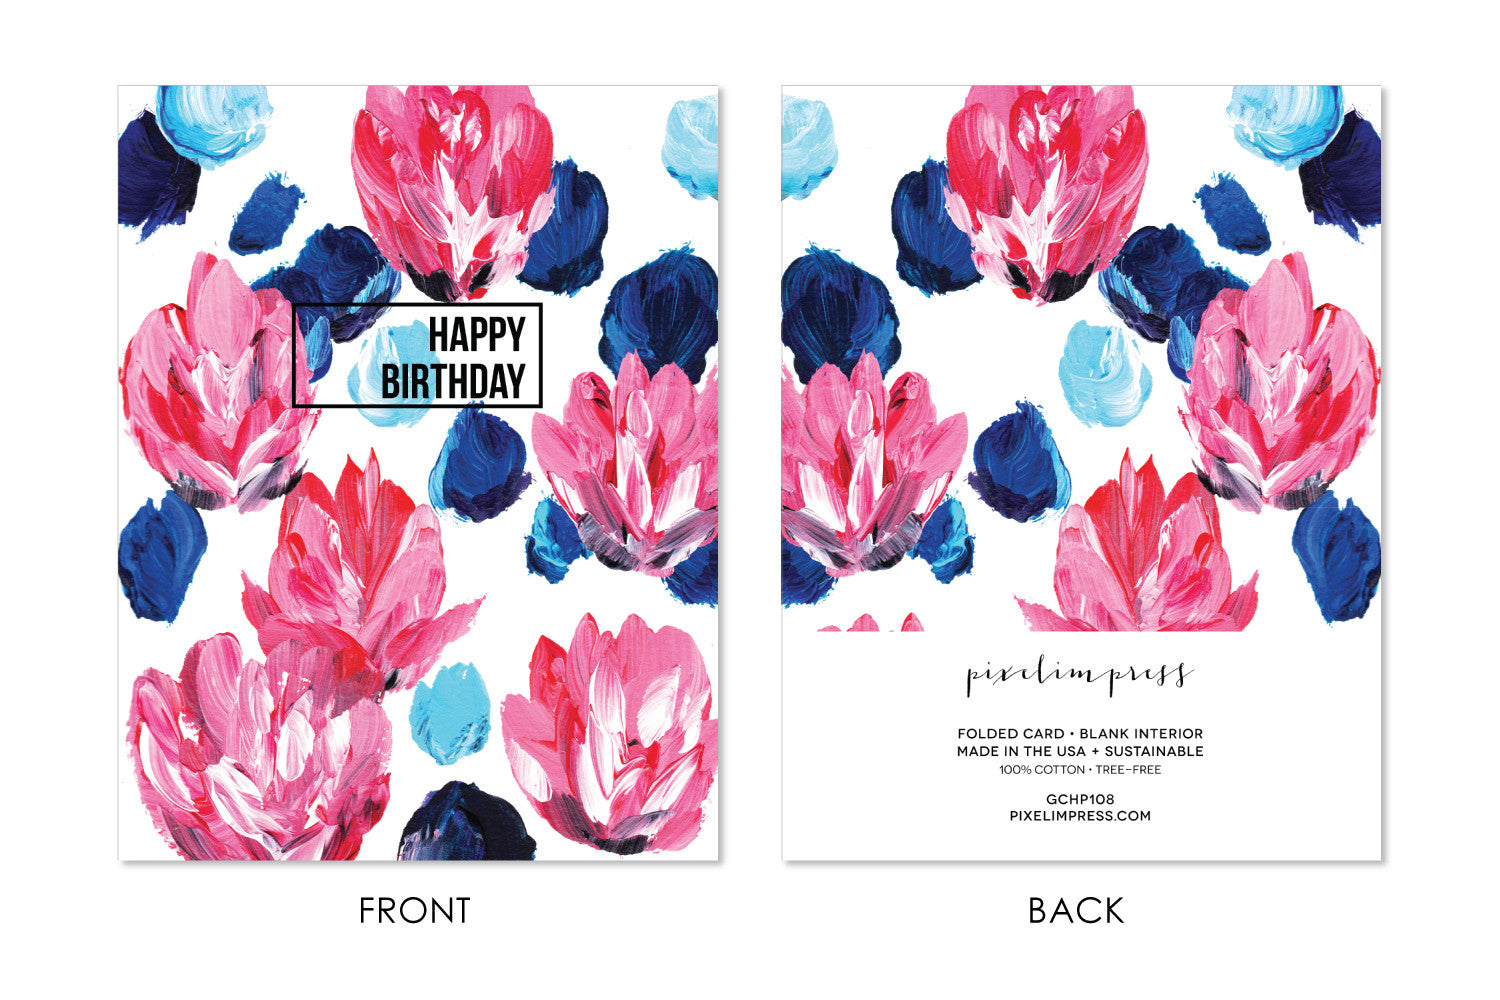 Happy Birthday Pink And Blue Floral Greeting Card Pixelimpress